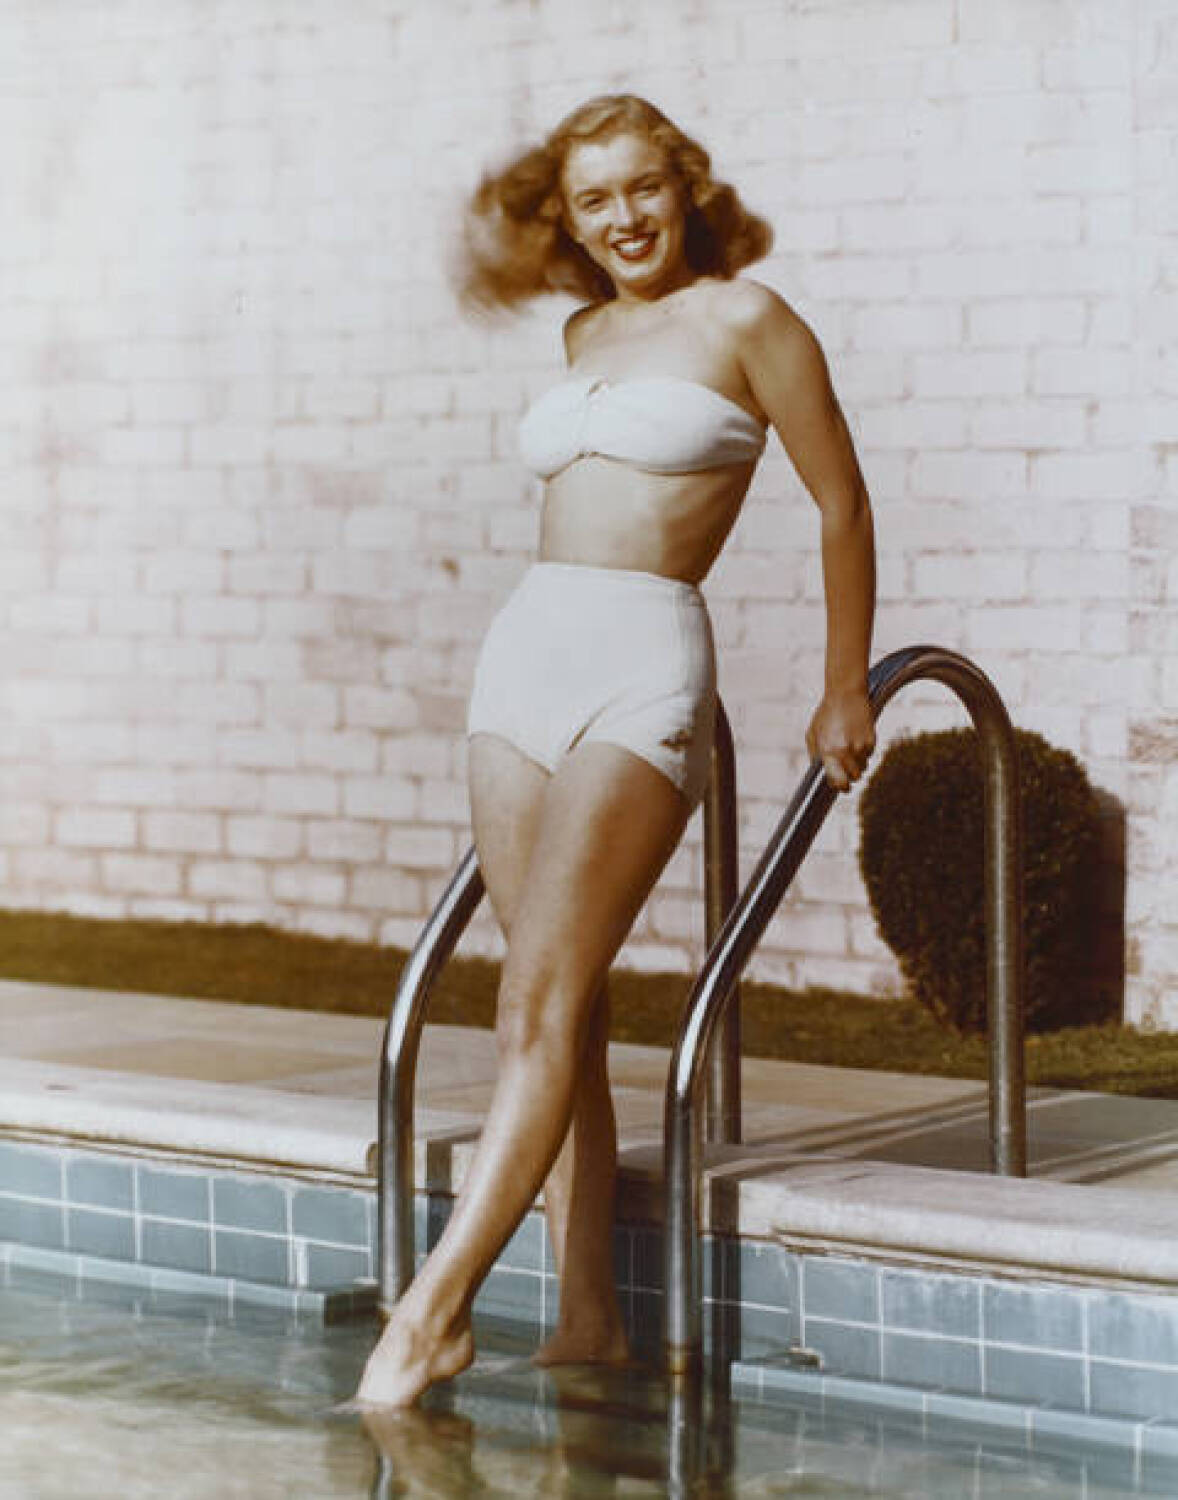 MARILYN MONROE IN BATHING SUIT BY ANDRE DE DIENES